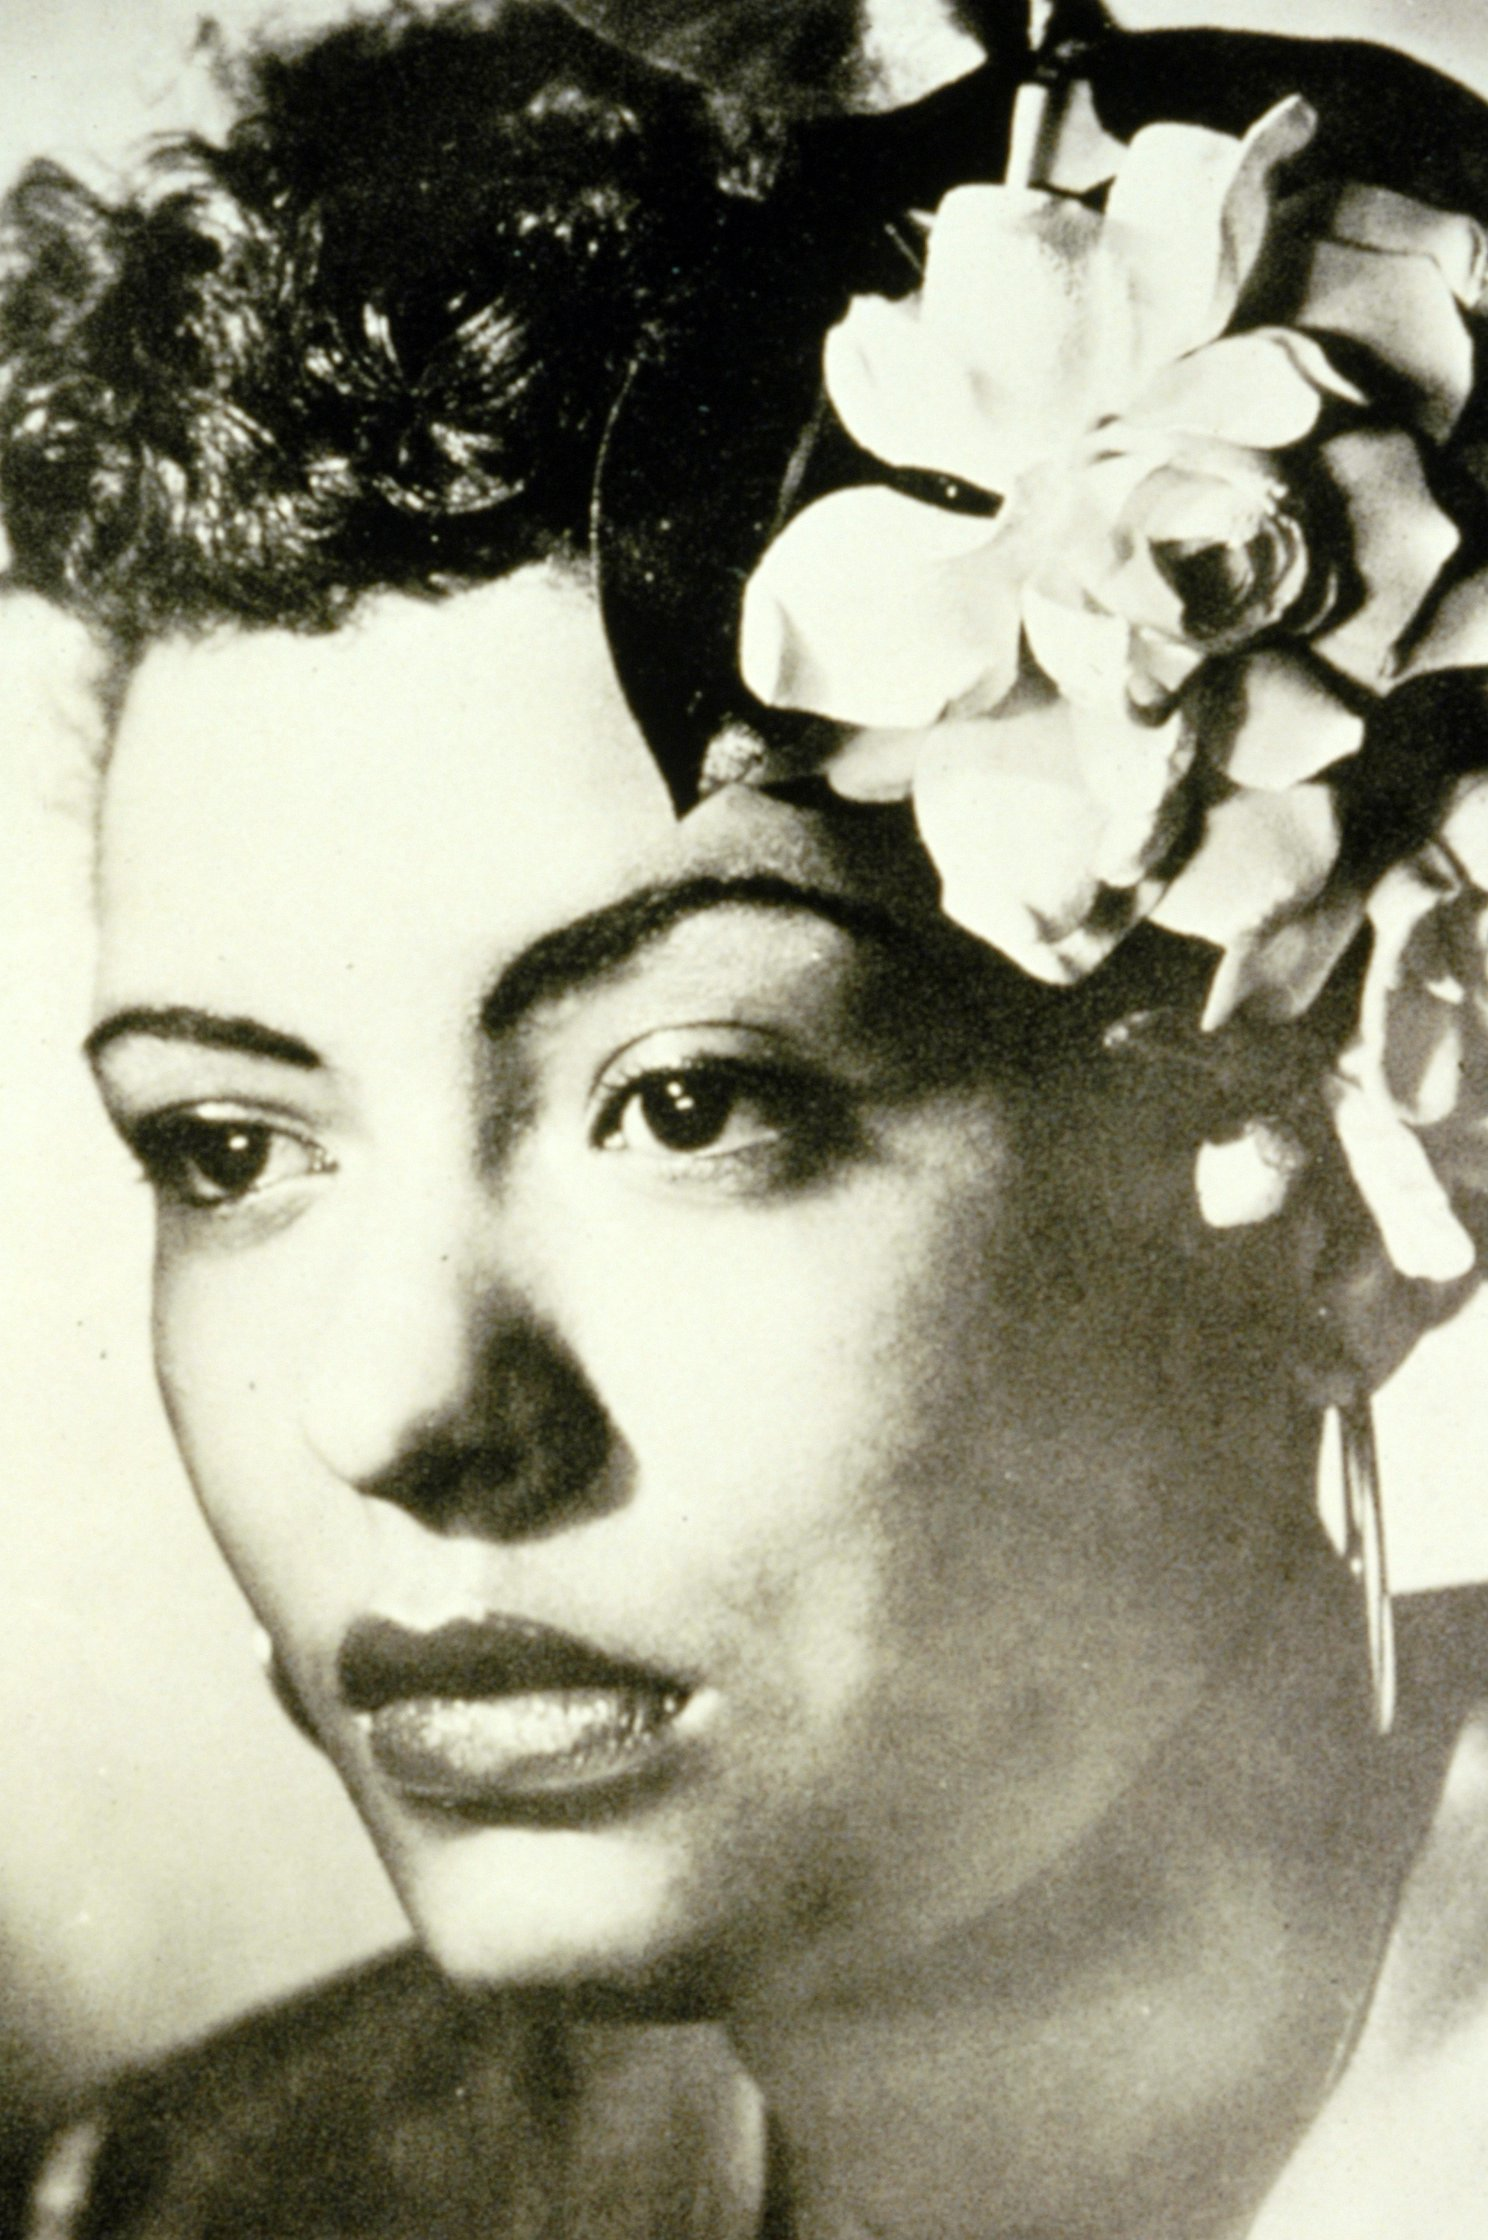 Image of Billie Holliday with flowers in her hair